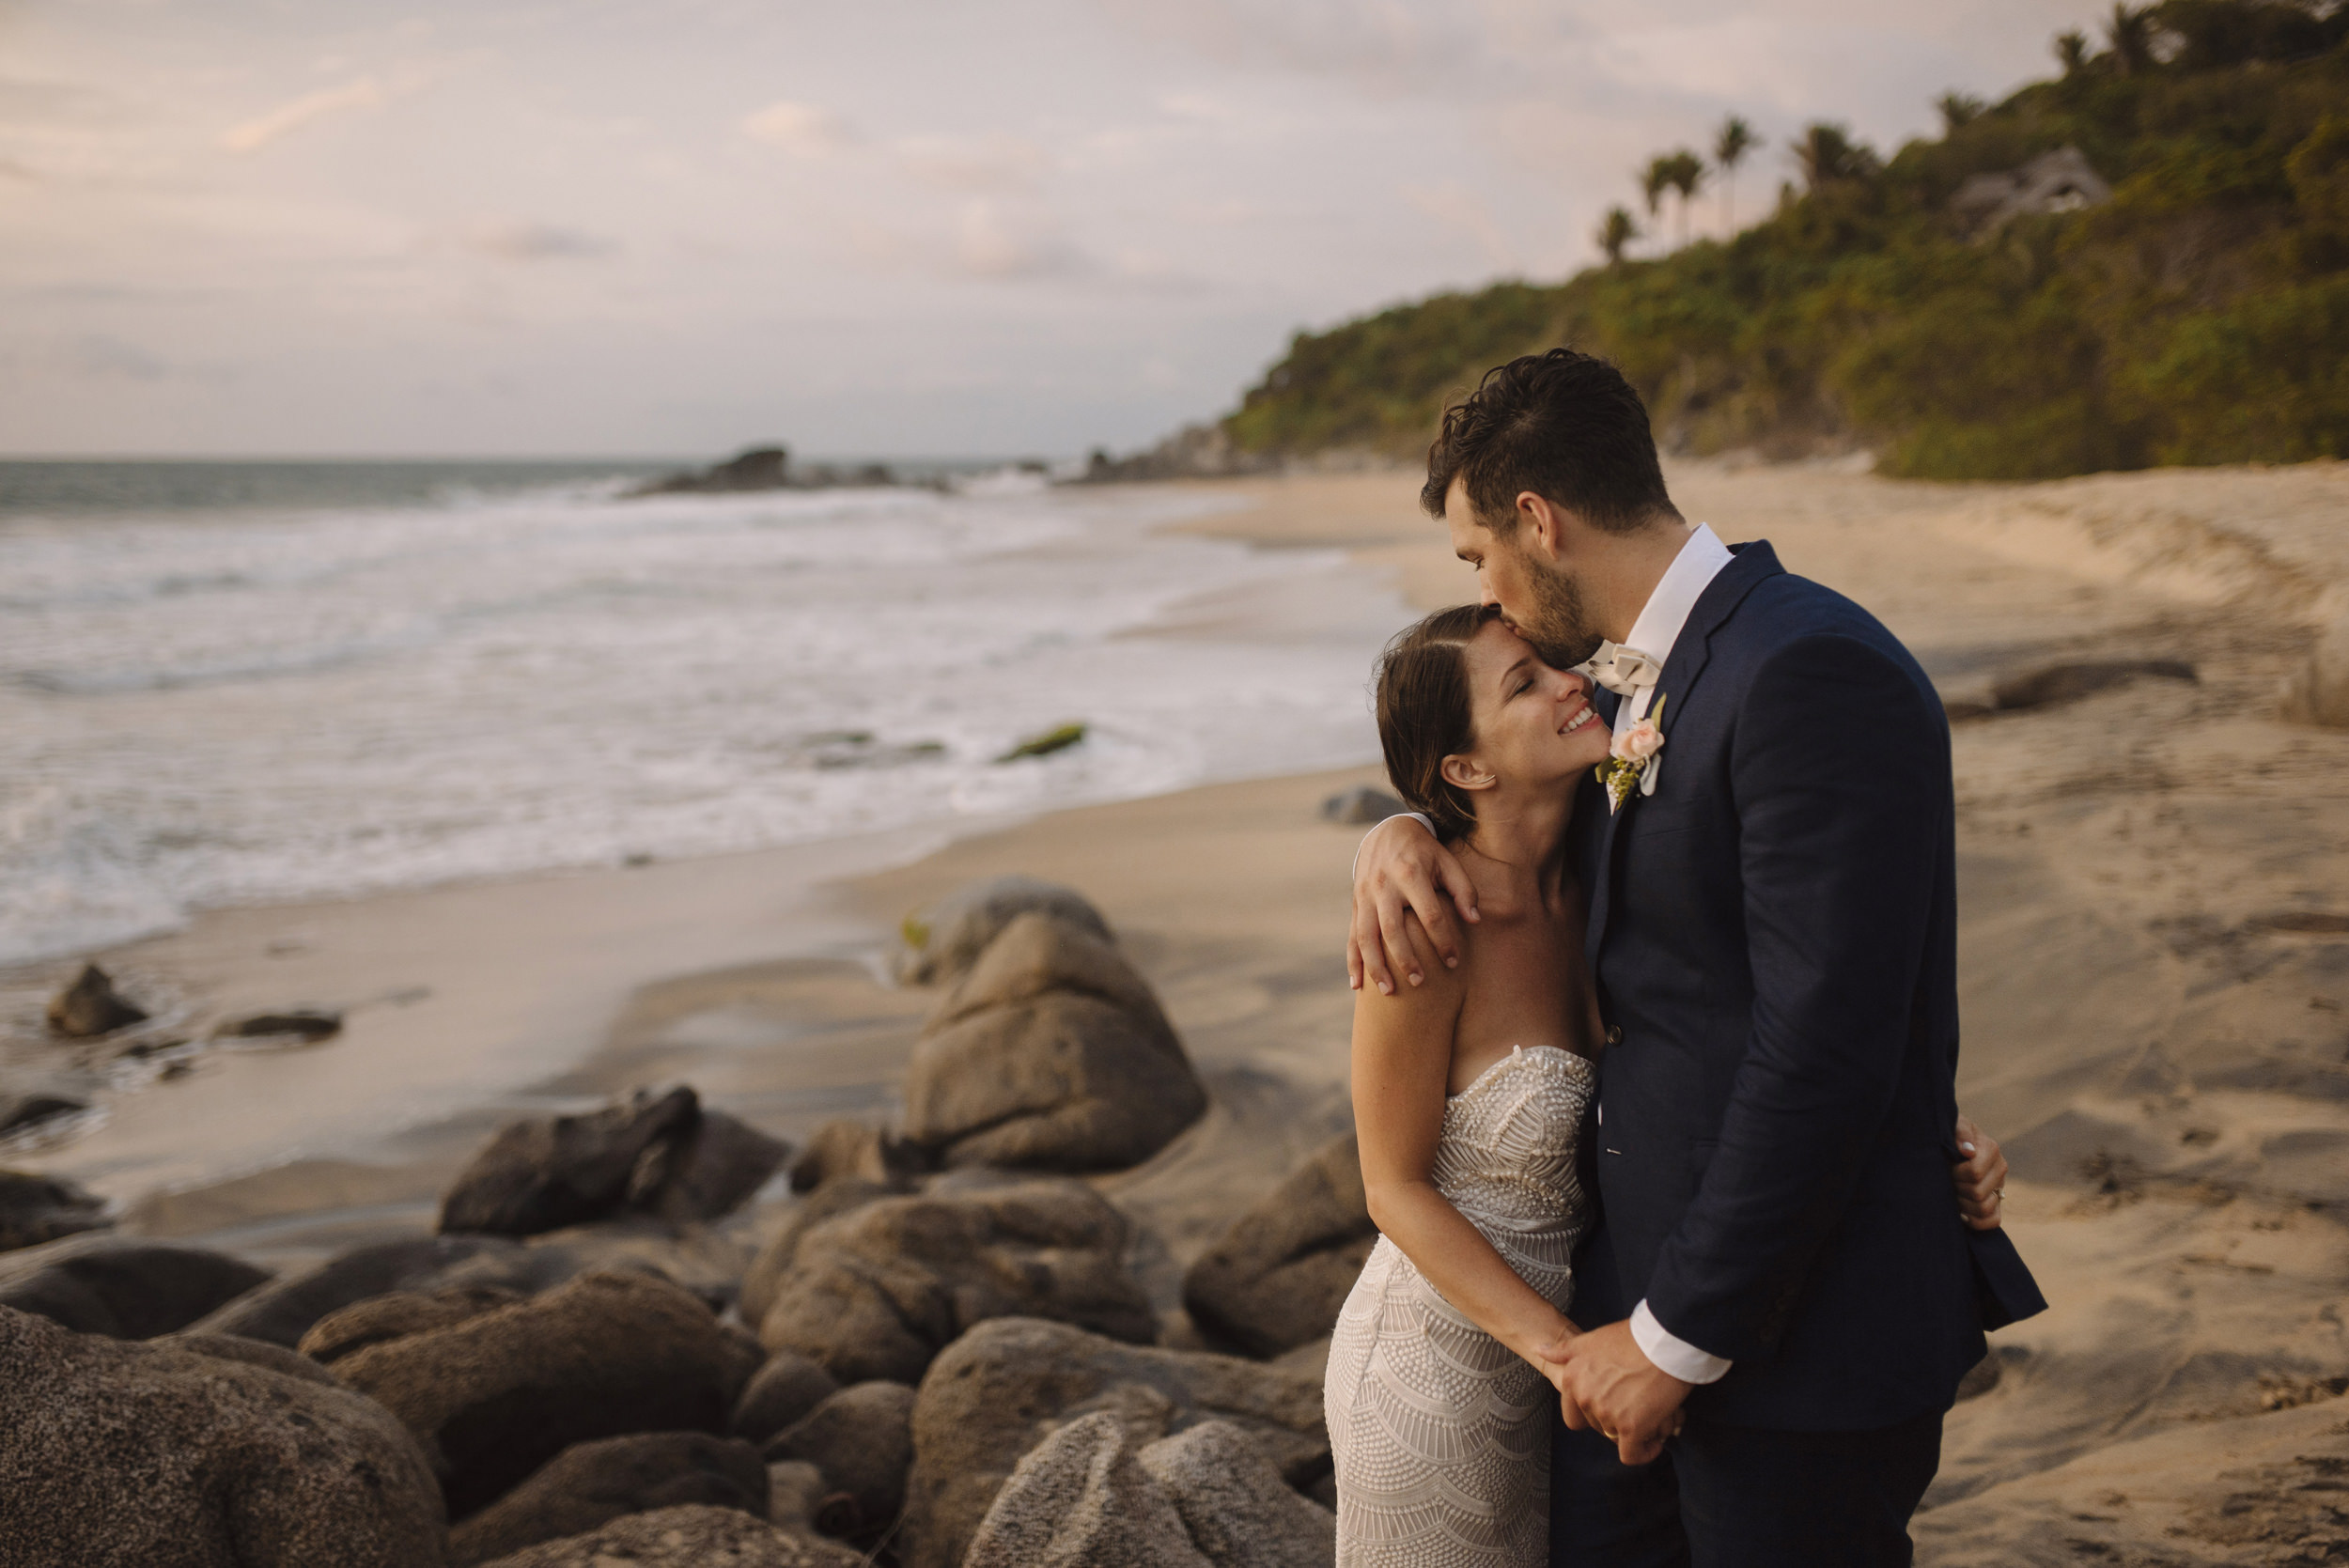 A groom lovingly kisses his bride on the forehead during their Sayulita Wedding with Puerto Vallarta Destination Elopement photographers Colby and Jess